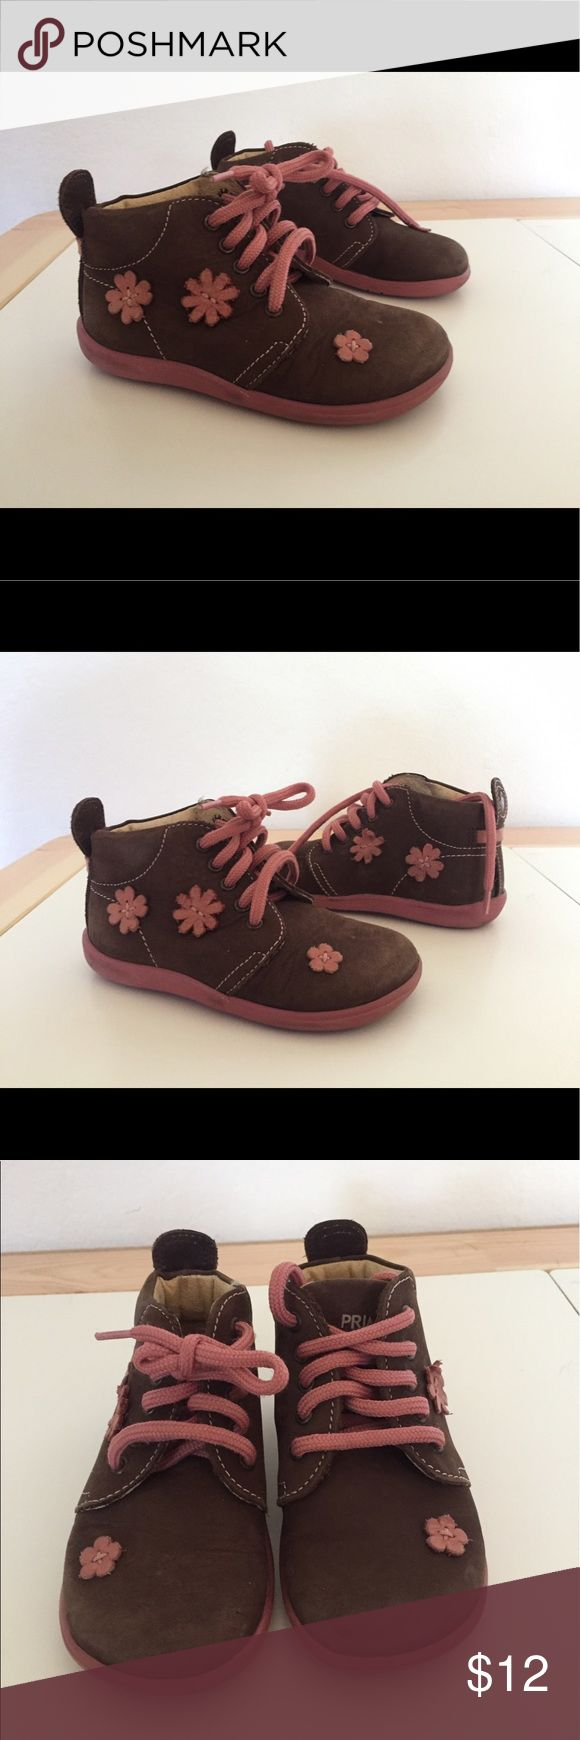 Primigi Girls Brown Boots Pink Flowers Size 22 5.5 Brand : Primigi  Color : Brown/Pink  Size : 22 (5.5)  Material : Leather  Miniflex  Anti Shock  Pre owned  Scuff marks on toe boxes  Lots of life left in the soles Primigi Shoes Boots